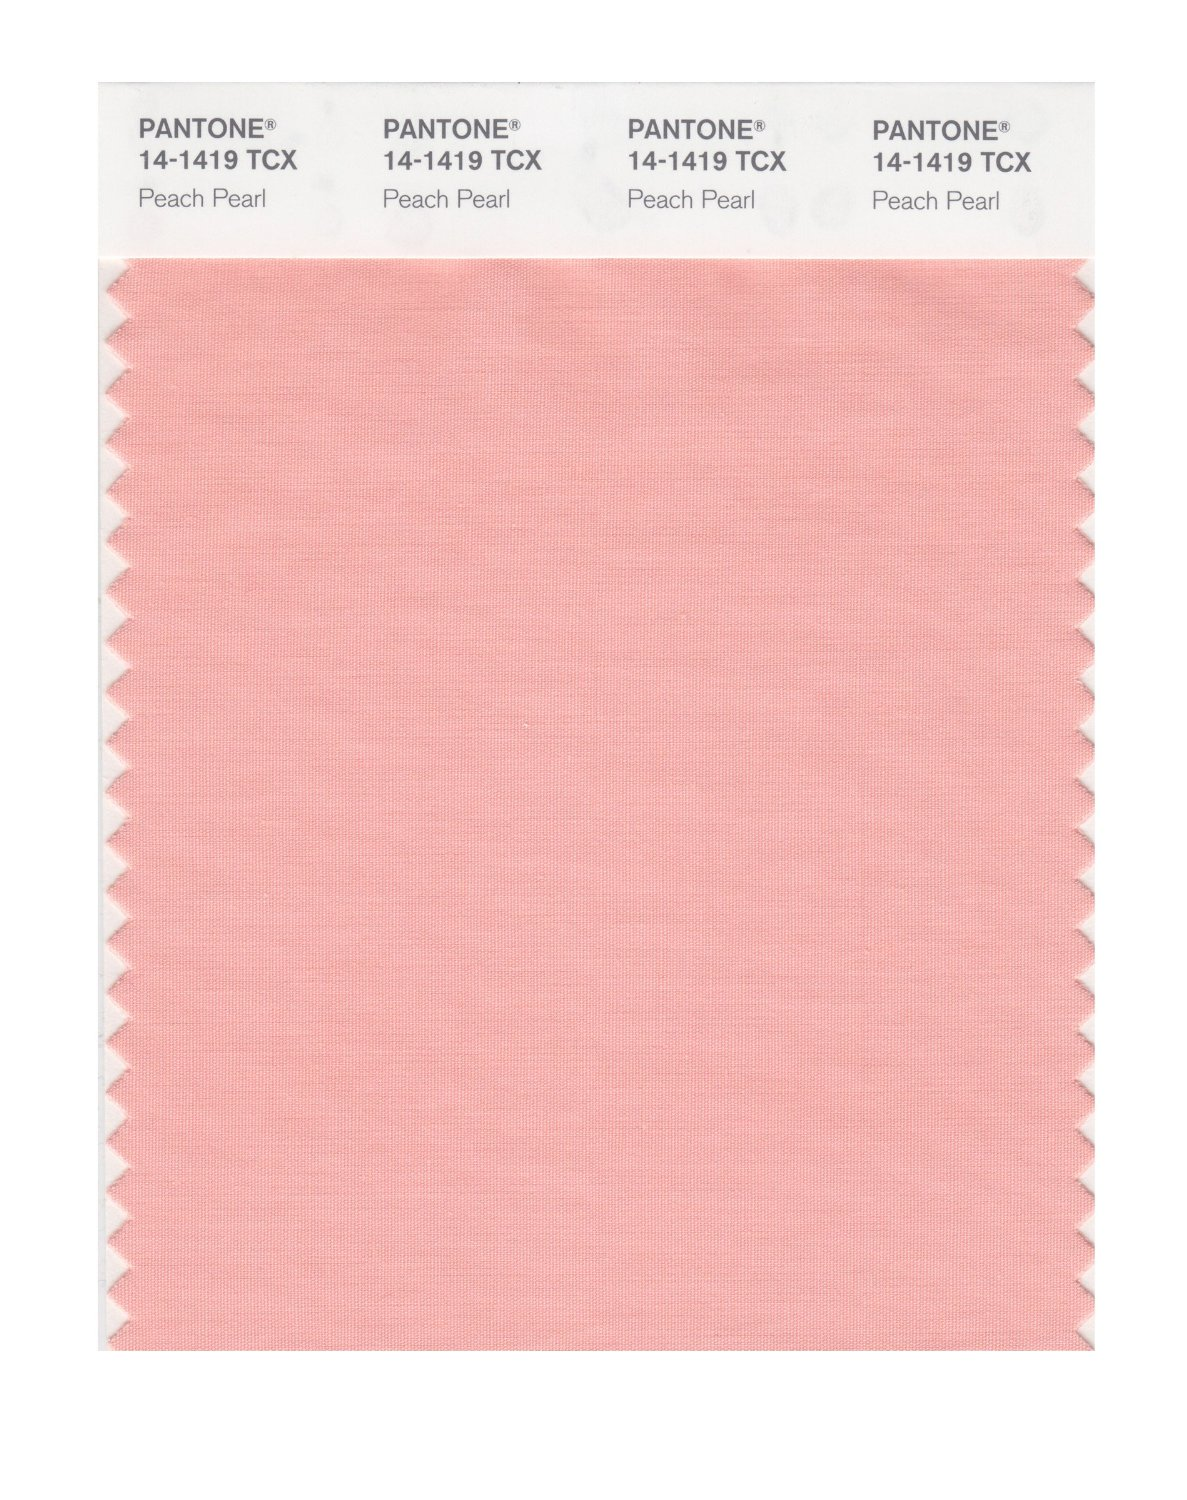 Pantone Smart Swatch 14-1419 Peach Pearl